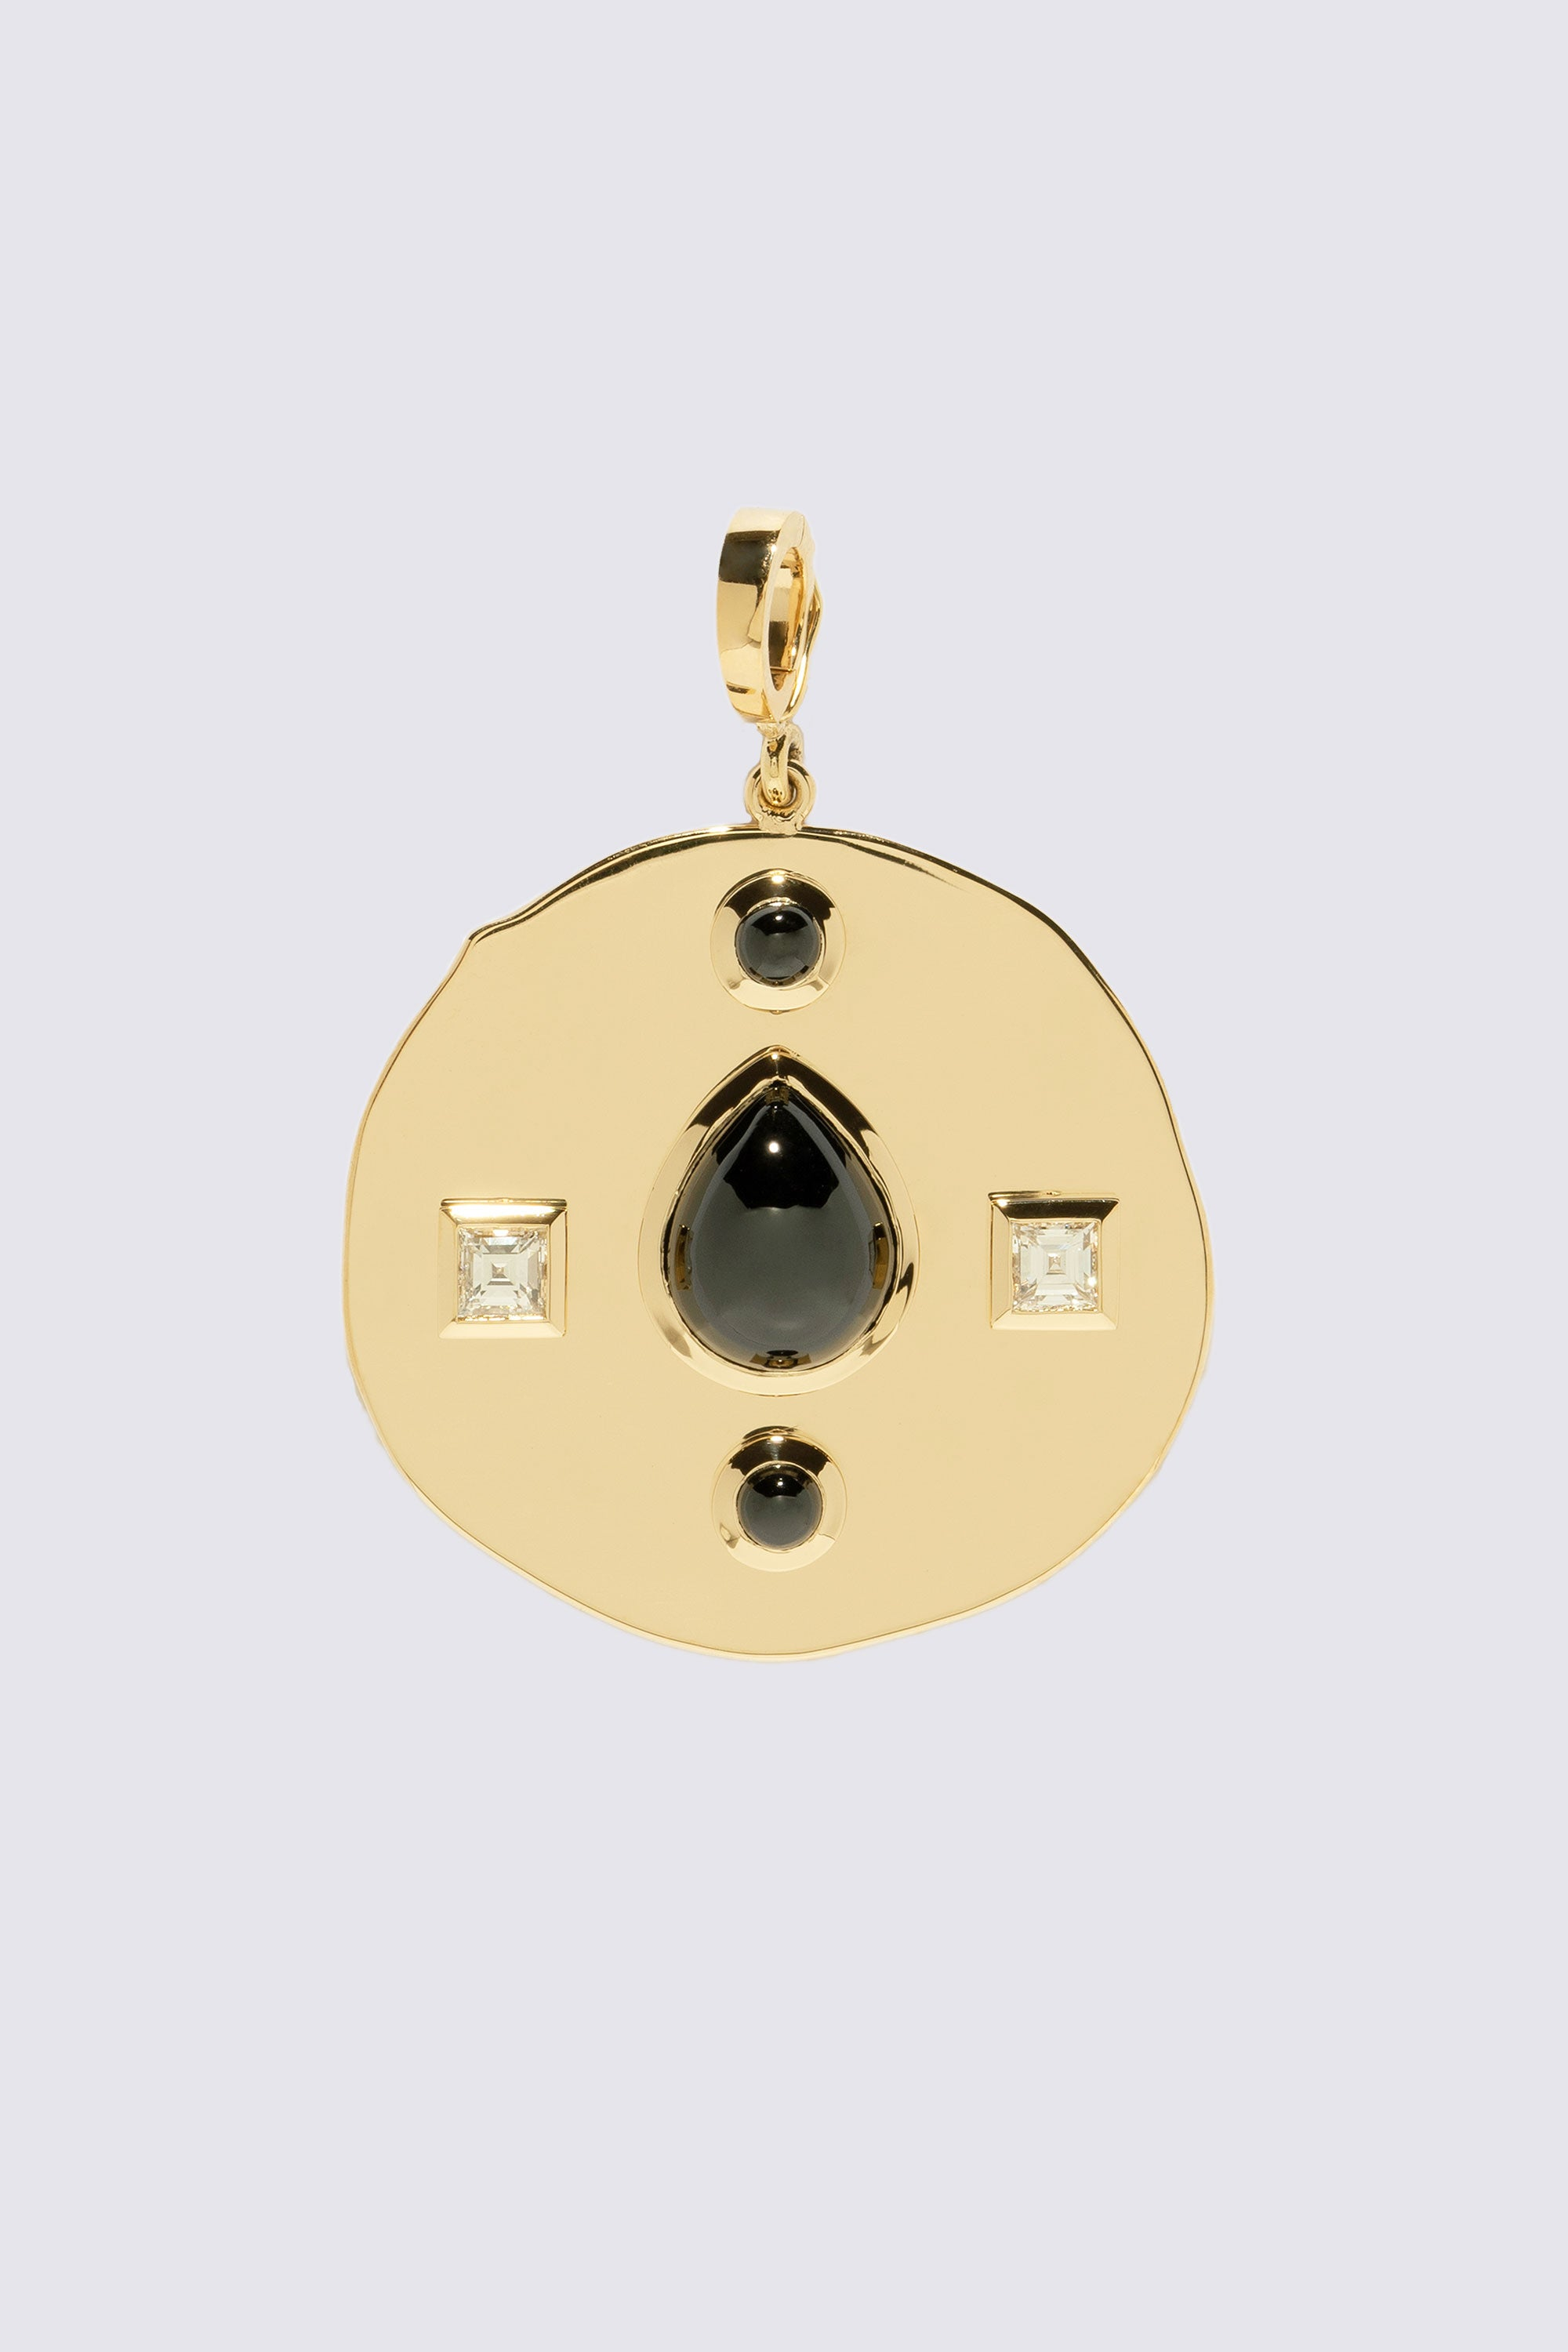 AZLEE - Modern Byzantine Large Coin Charm, Gold